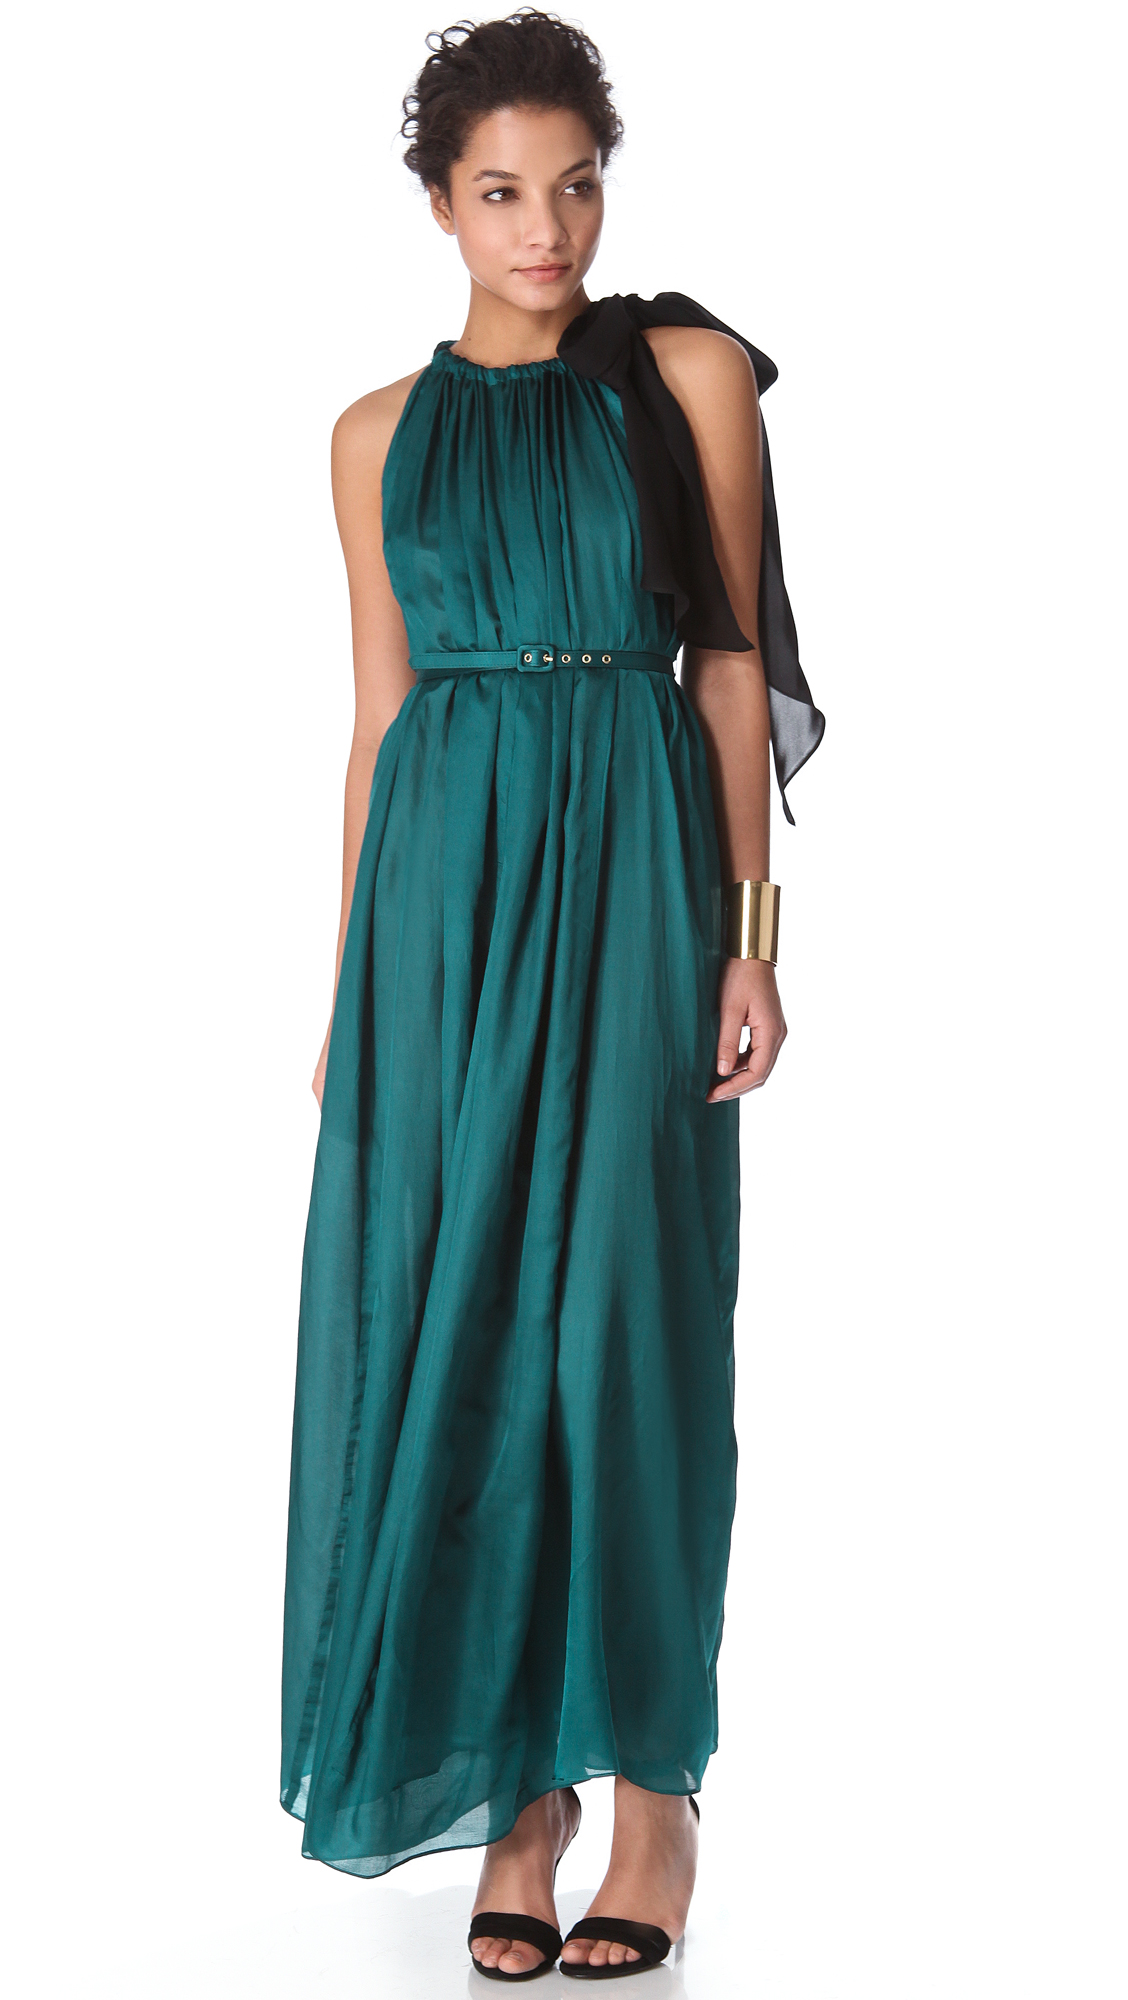 teal maxi dress - Gowns and Dress Ideas